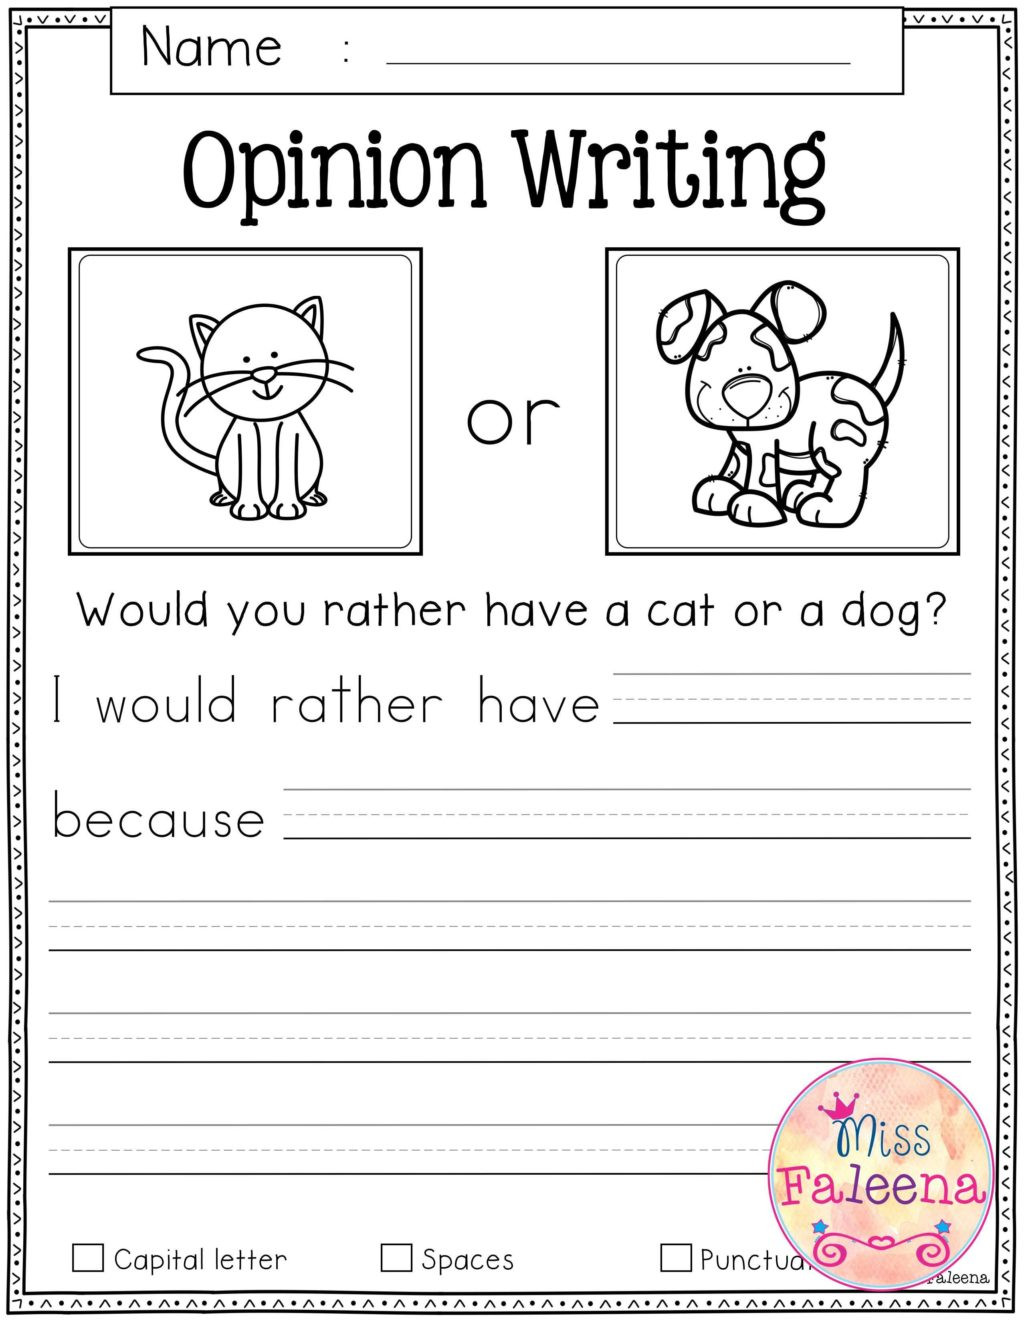 writing activities forn printable free prompts math worksheet 1024x1323